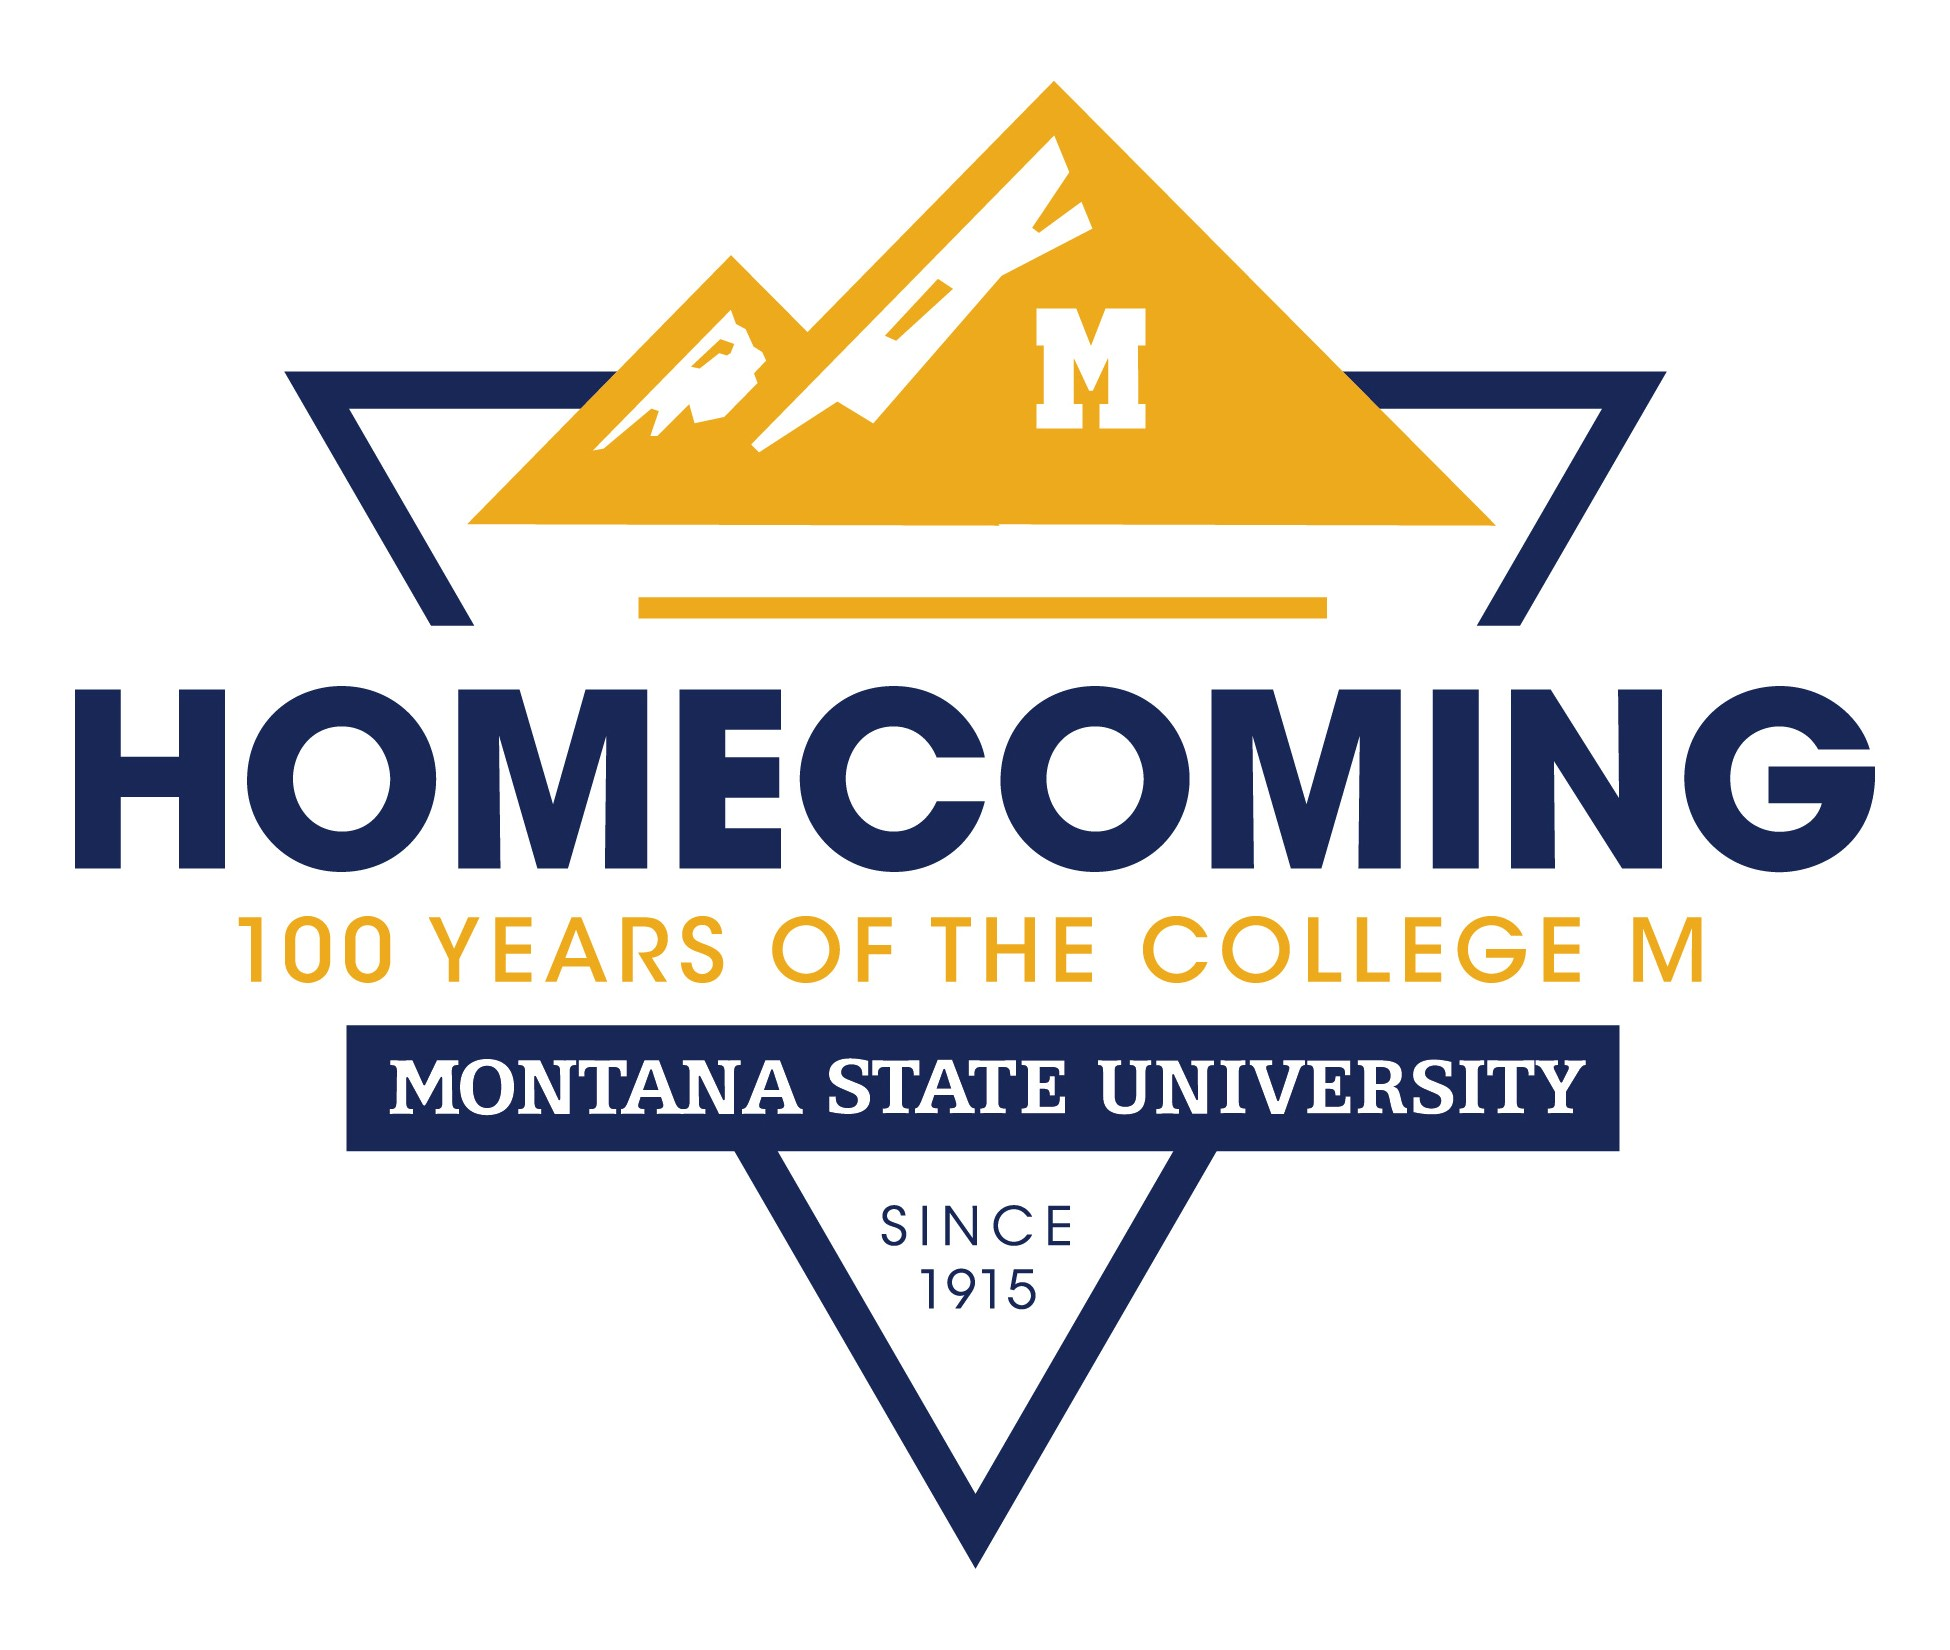 homecoming 100 years of the M logo